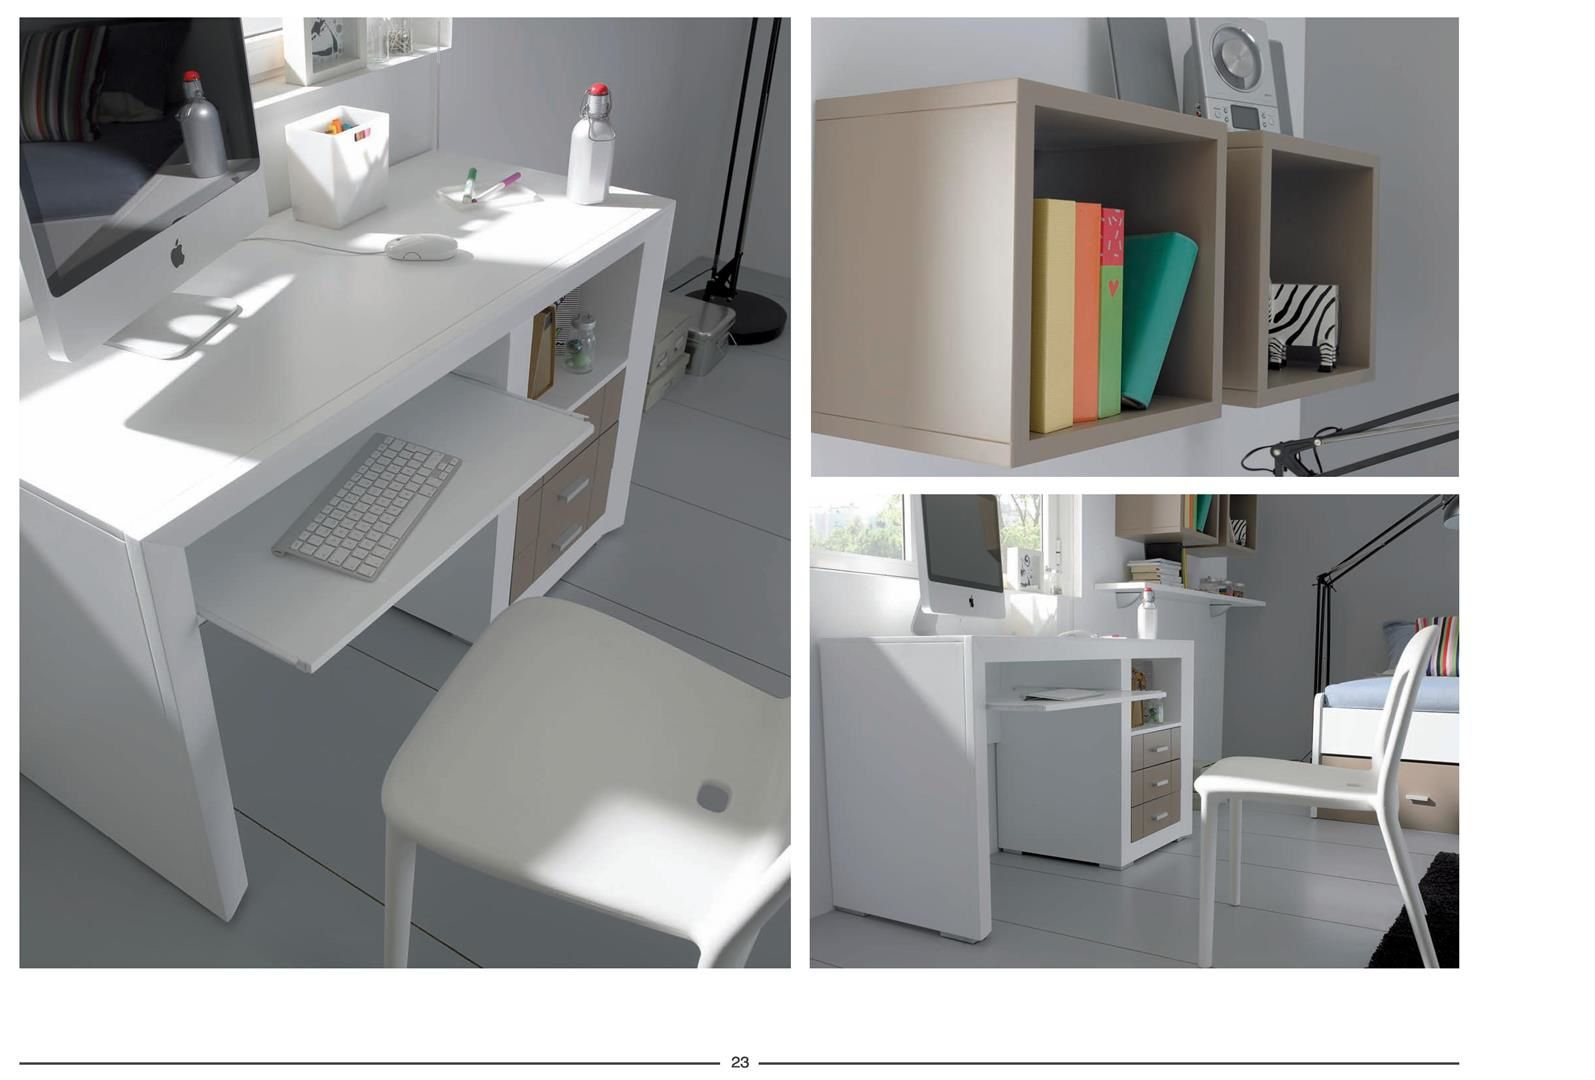 meubles laques modulables, vitrines, chevets, commodes ...